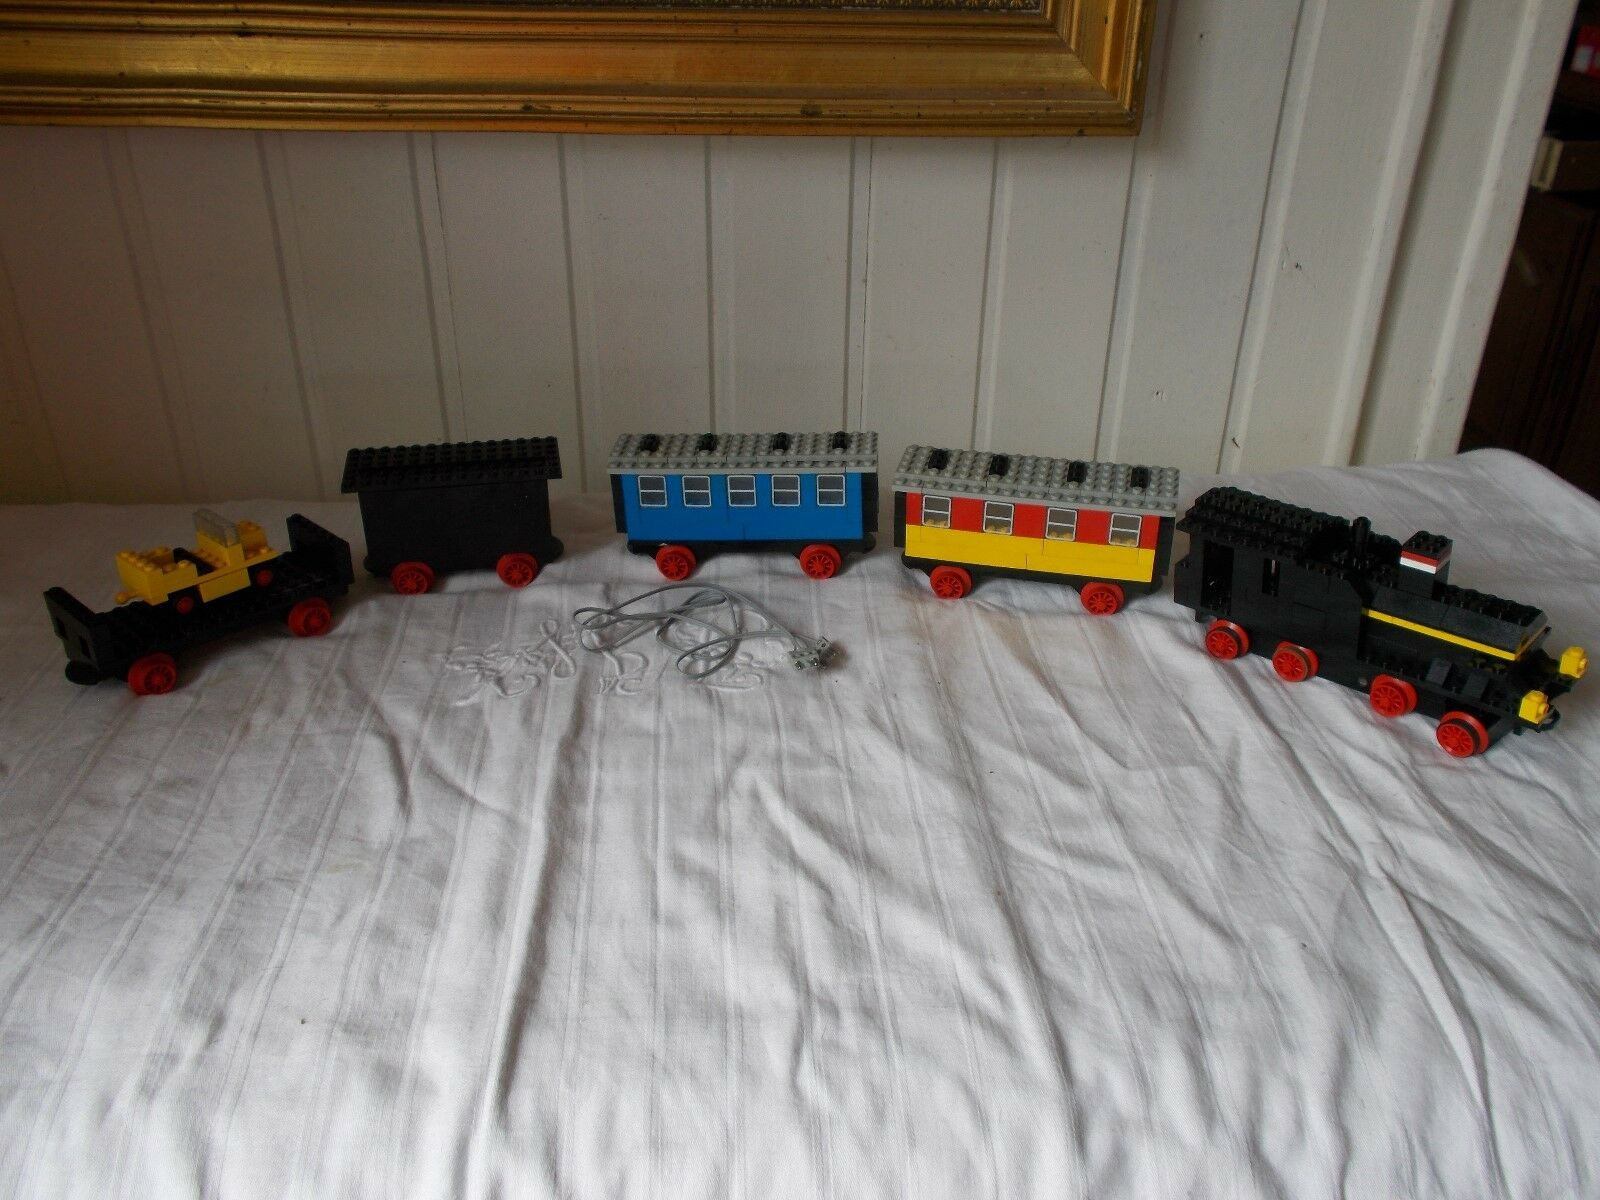 Lego system town -182 vintage train 1977 locomotive 4 cars